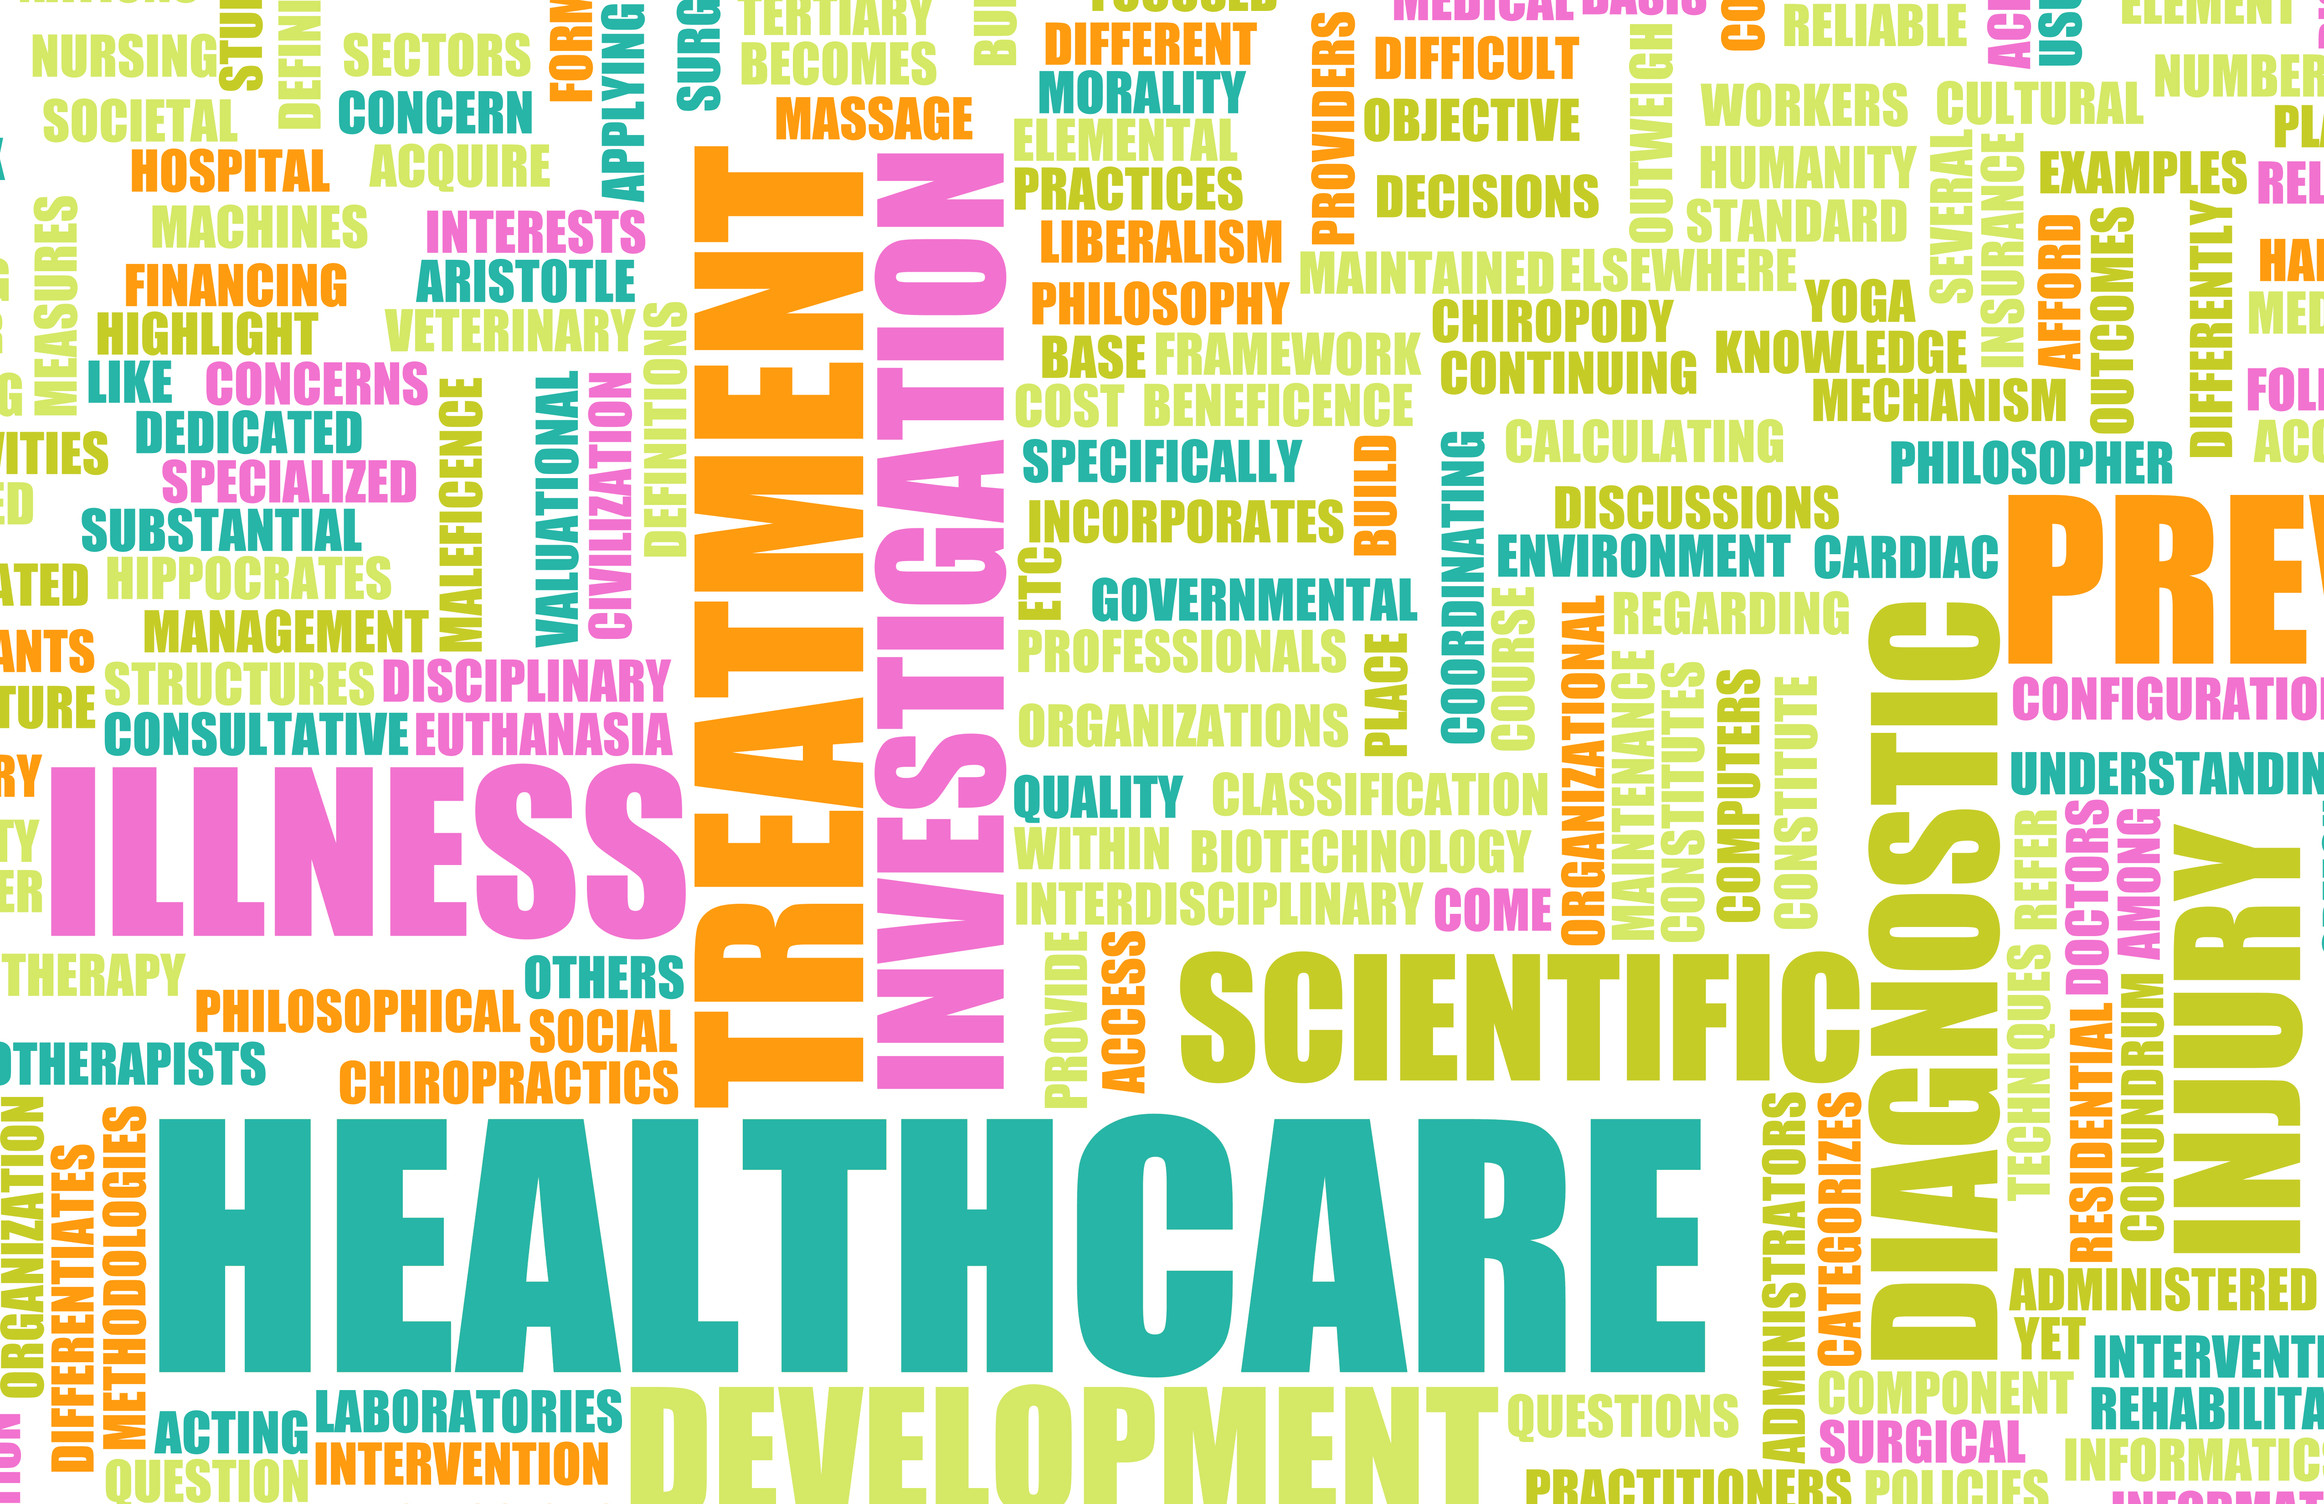 Word cloud featuring words related to healthcare